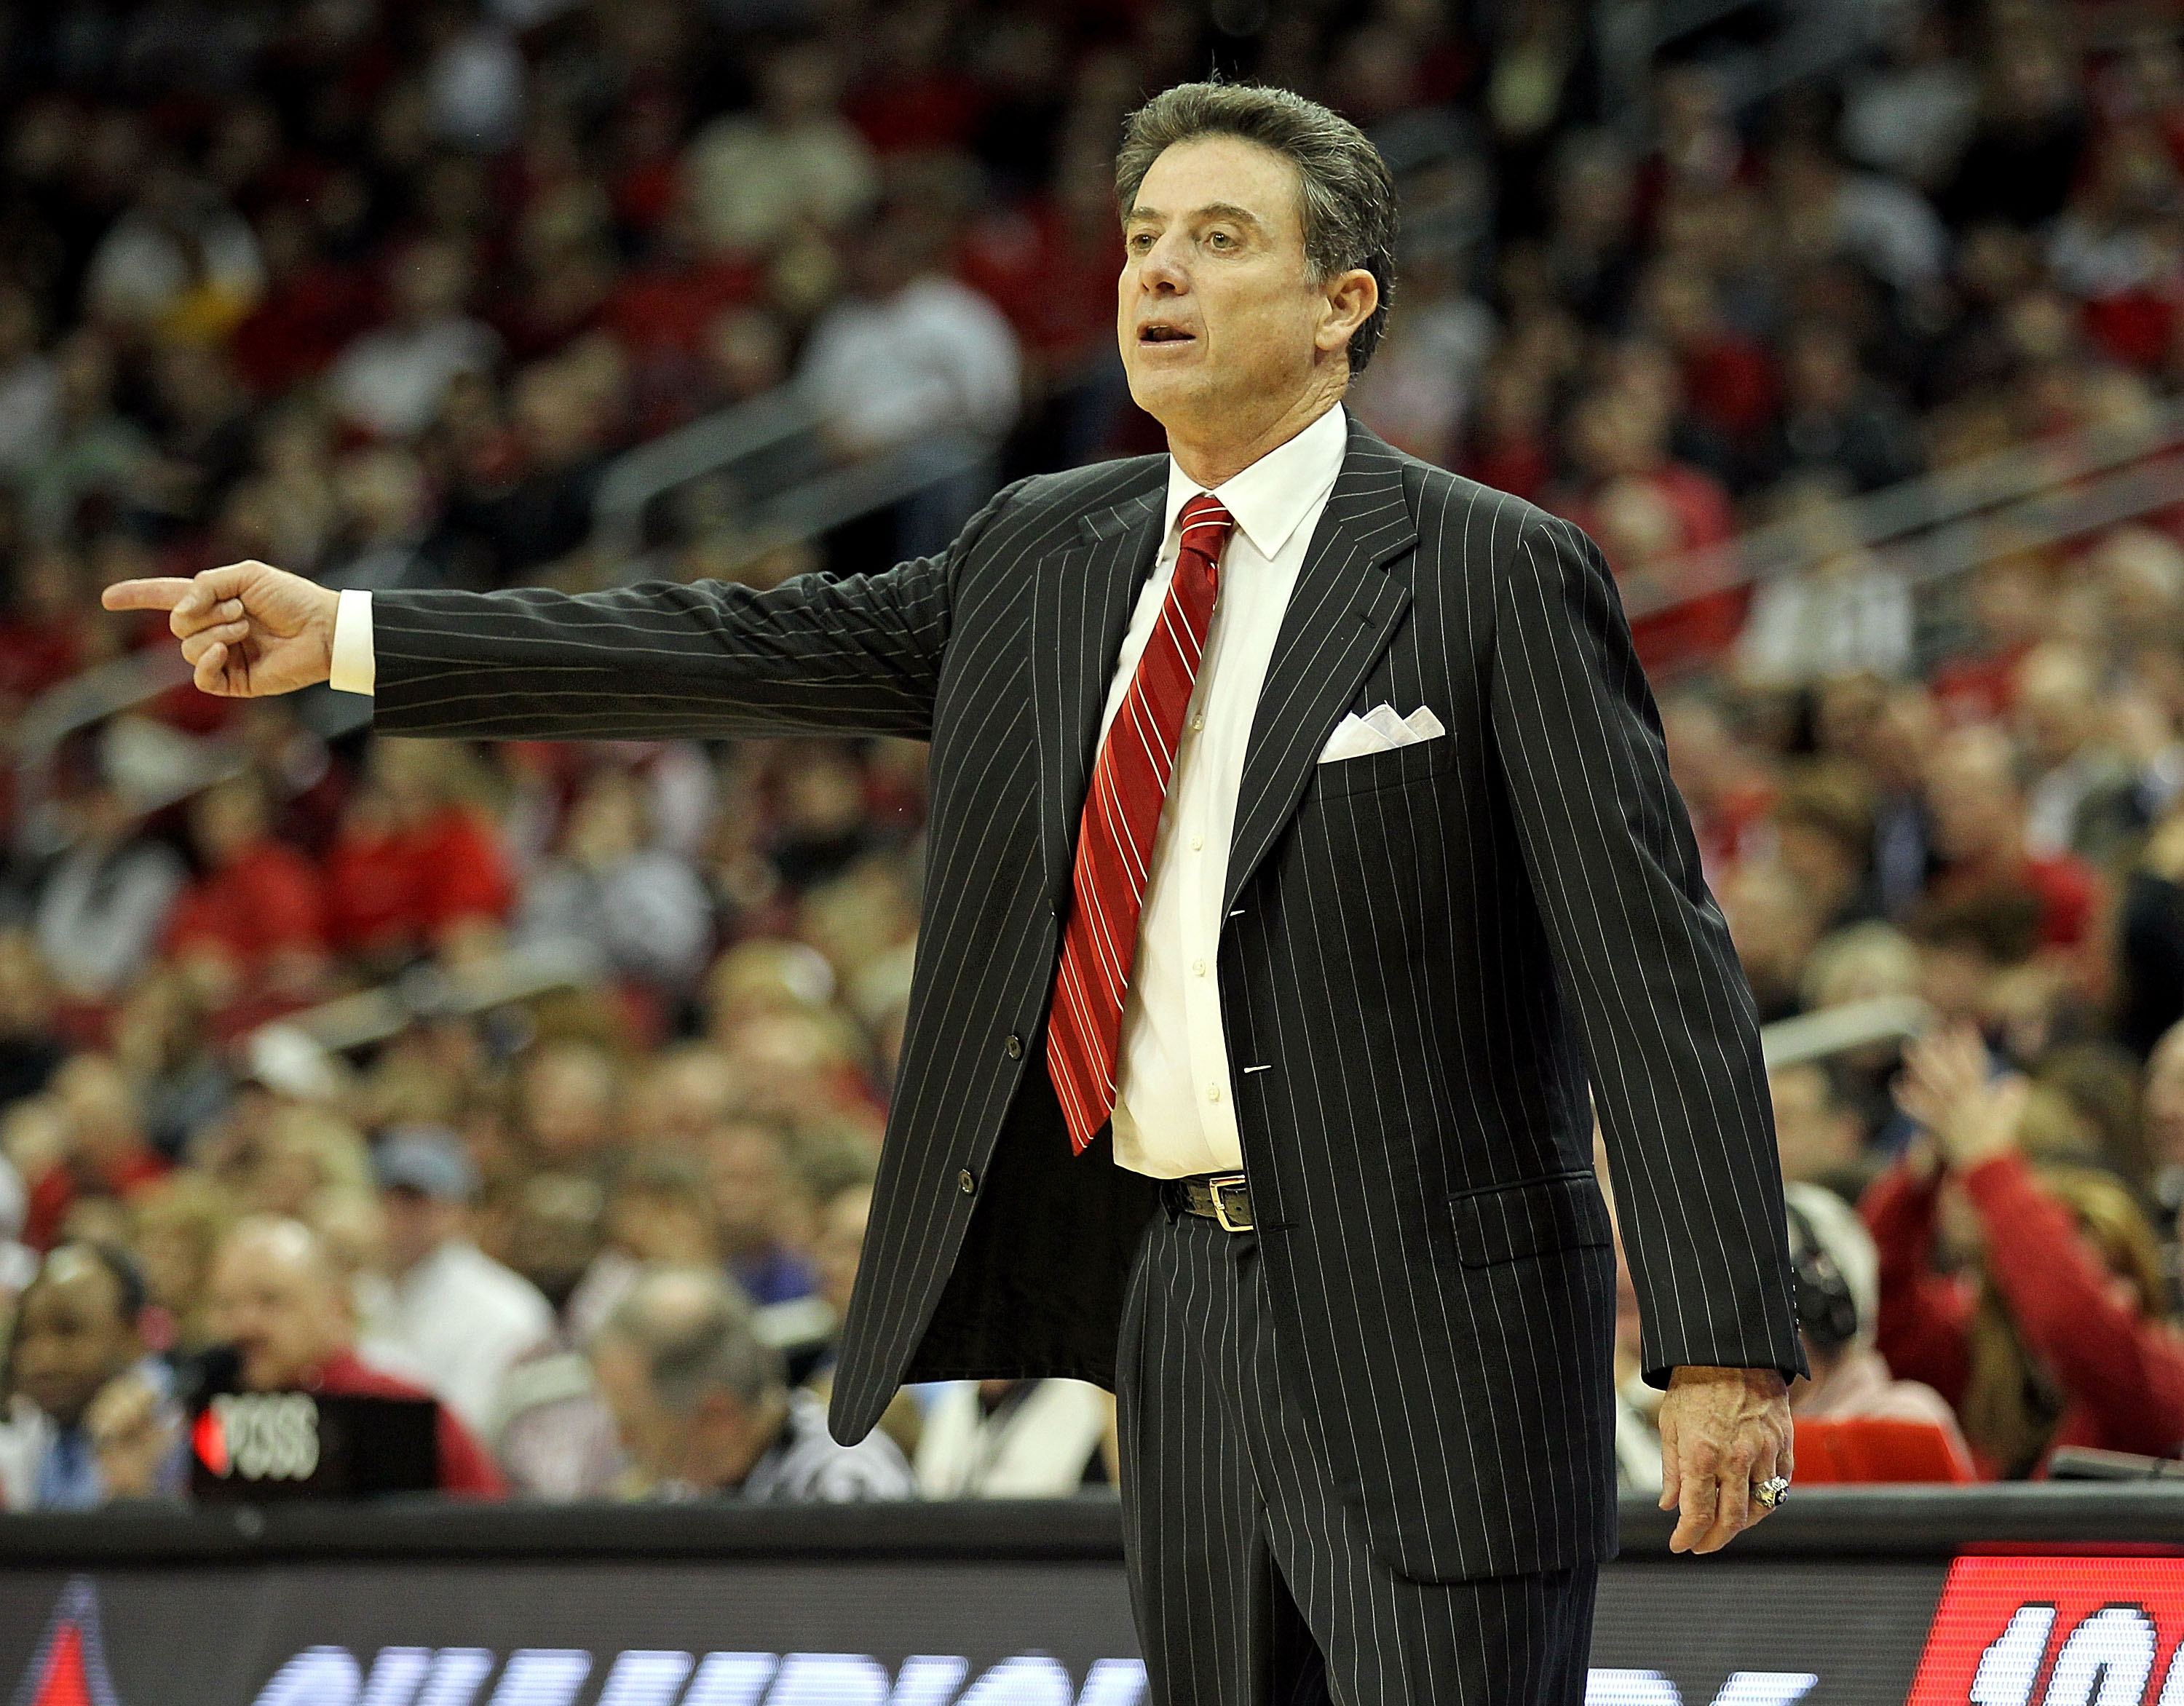 LOUISVILLE, KY - NOVEMBER 22:  Rick Pitino the Head Coach of the Louisville Cardinals gives instructions to his team during the game against  Chattanooga Mocs at the KFC Yum! CENTER on November 22, 2010 in Louisville, Kentucky.  Louisville won 106-65.  (P